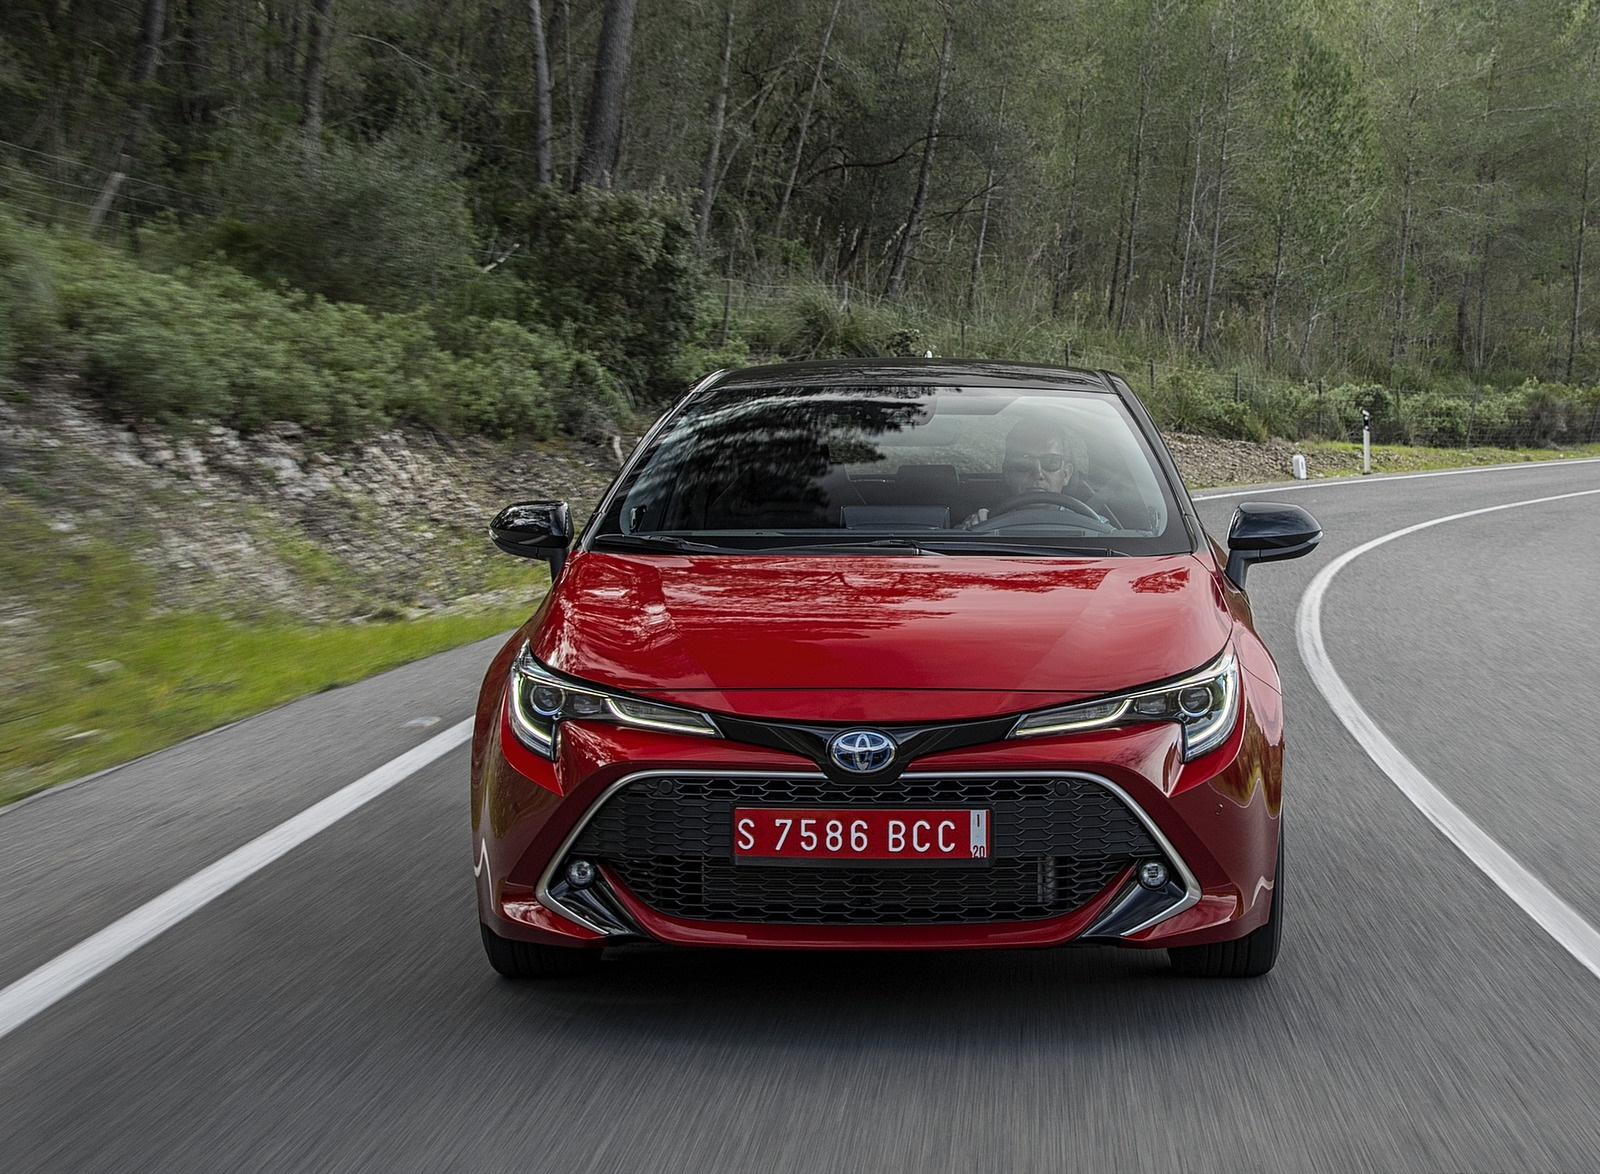 2019 Toyota Corolla Hatchback Hybrid 2.0L Red bitone (EU-Spec) Front Wallpapers (15)